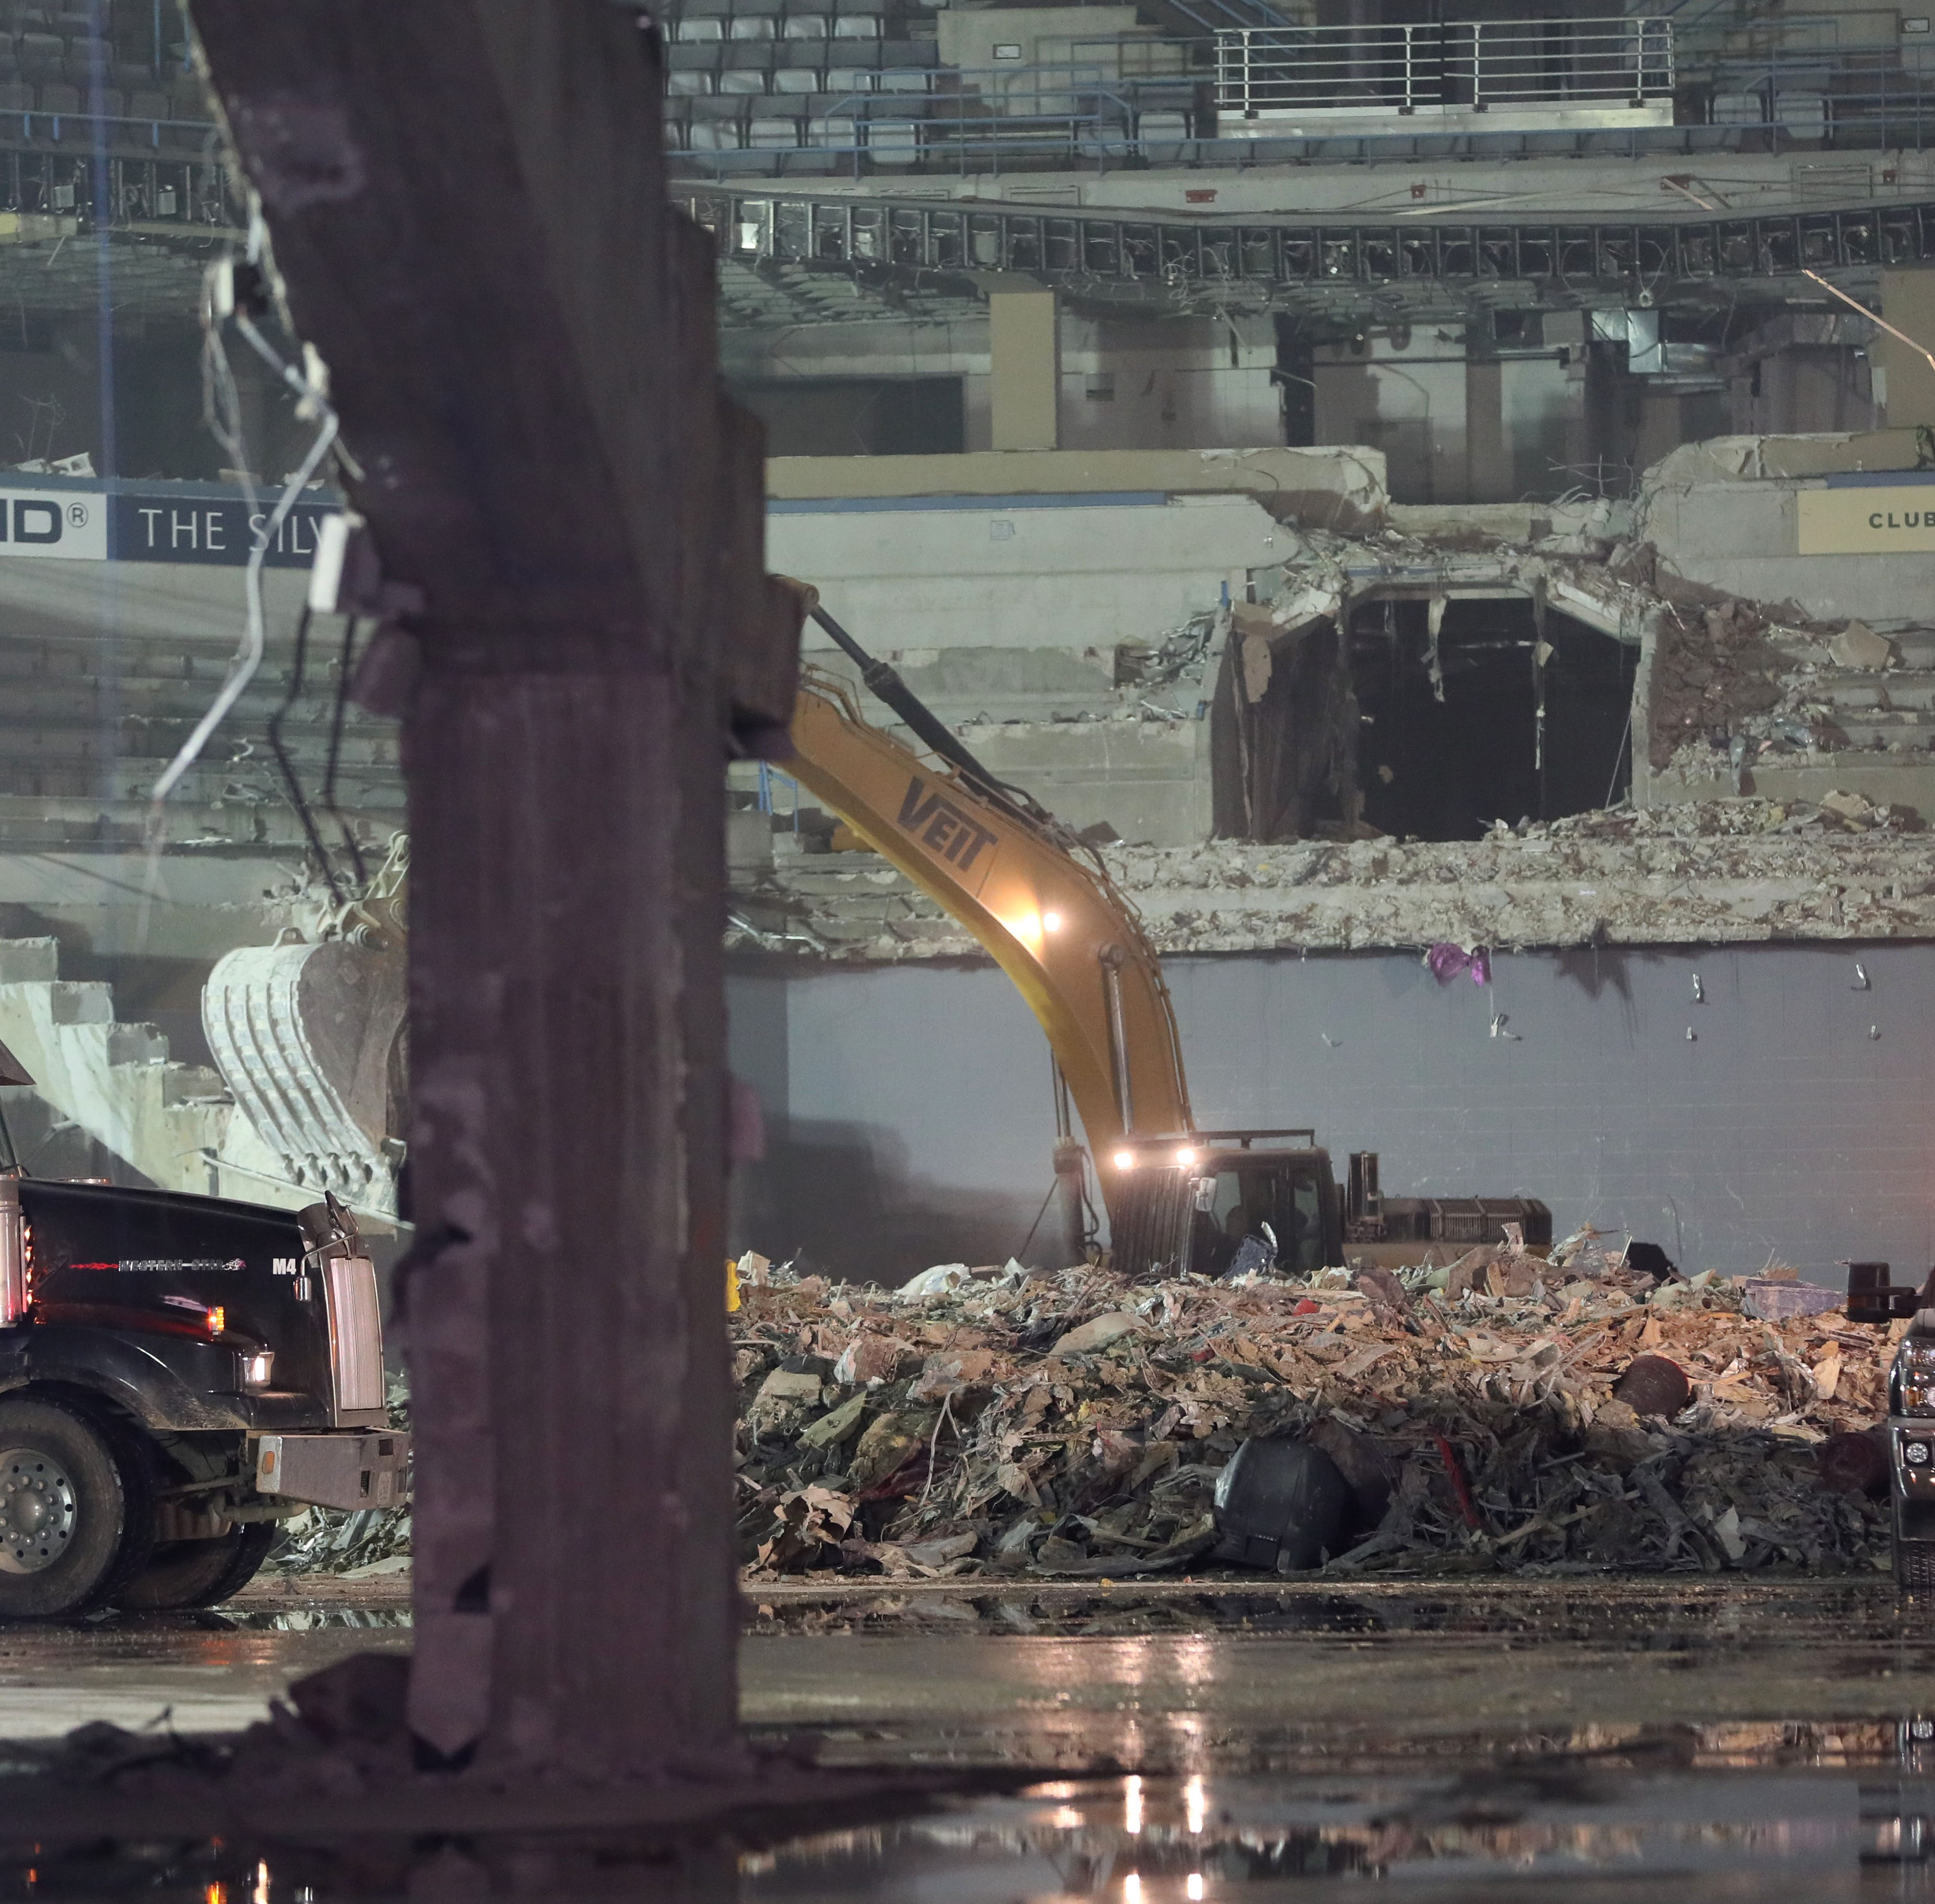 Bradley Center seating bowl reduced to rubble as Milwaukee Bucks plan redevelopment of old arena site